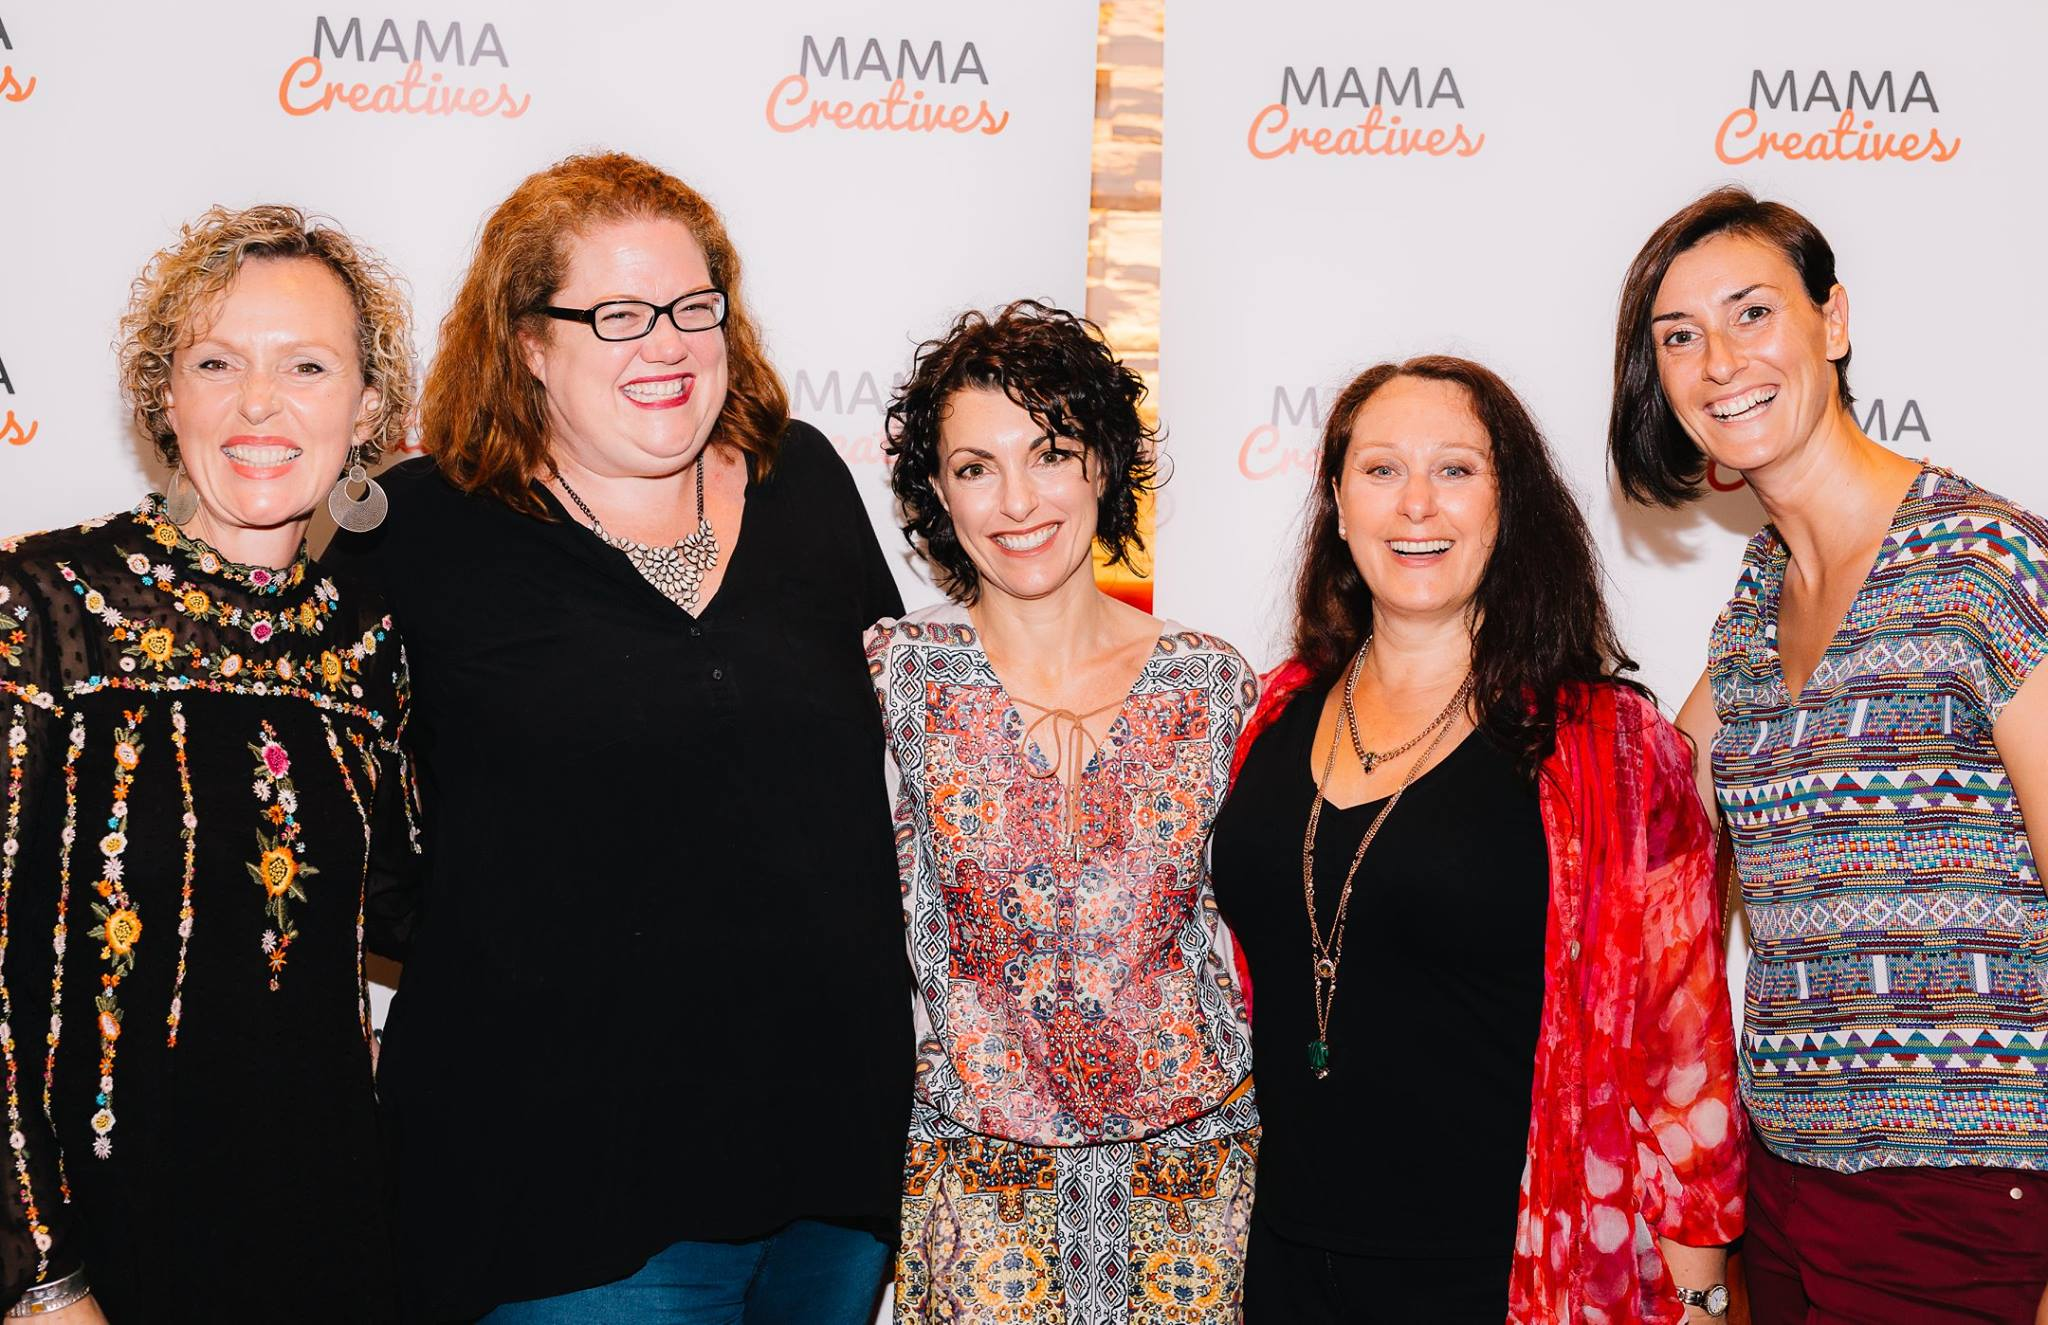 With Louise Trevitt, Bron Maxabella, Kerri Sackville, Justine Armstrong and Maeve Belshaw.